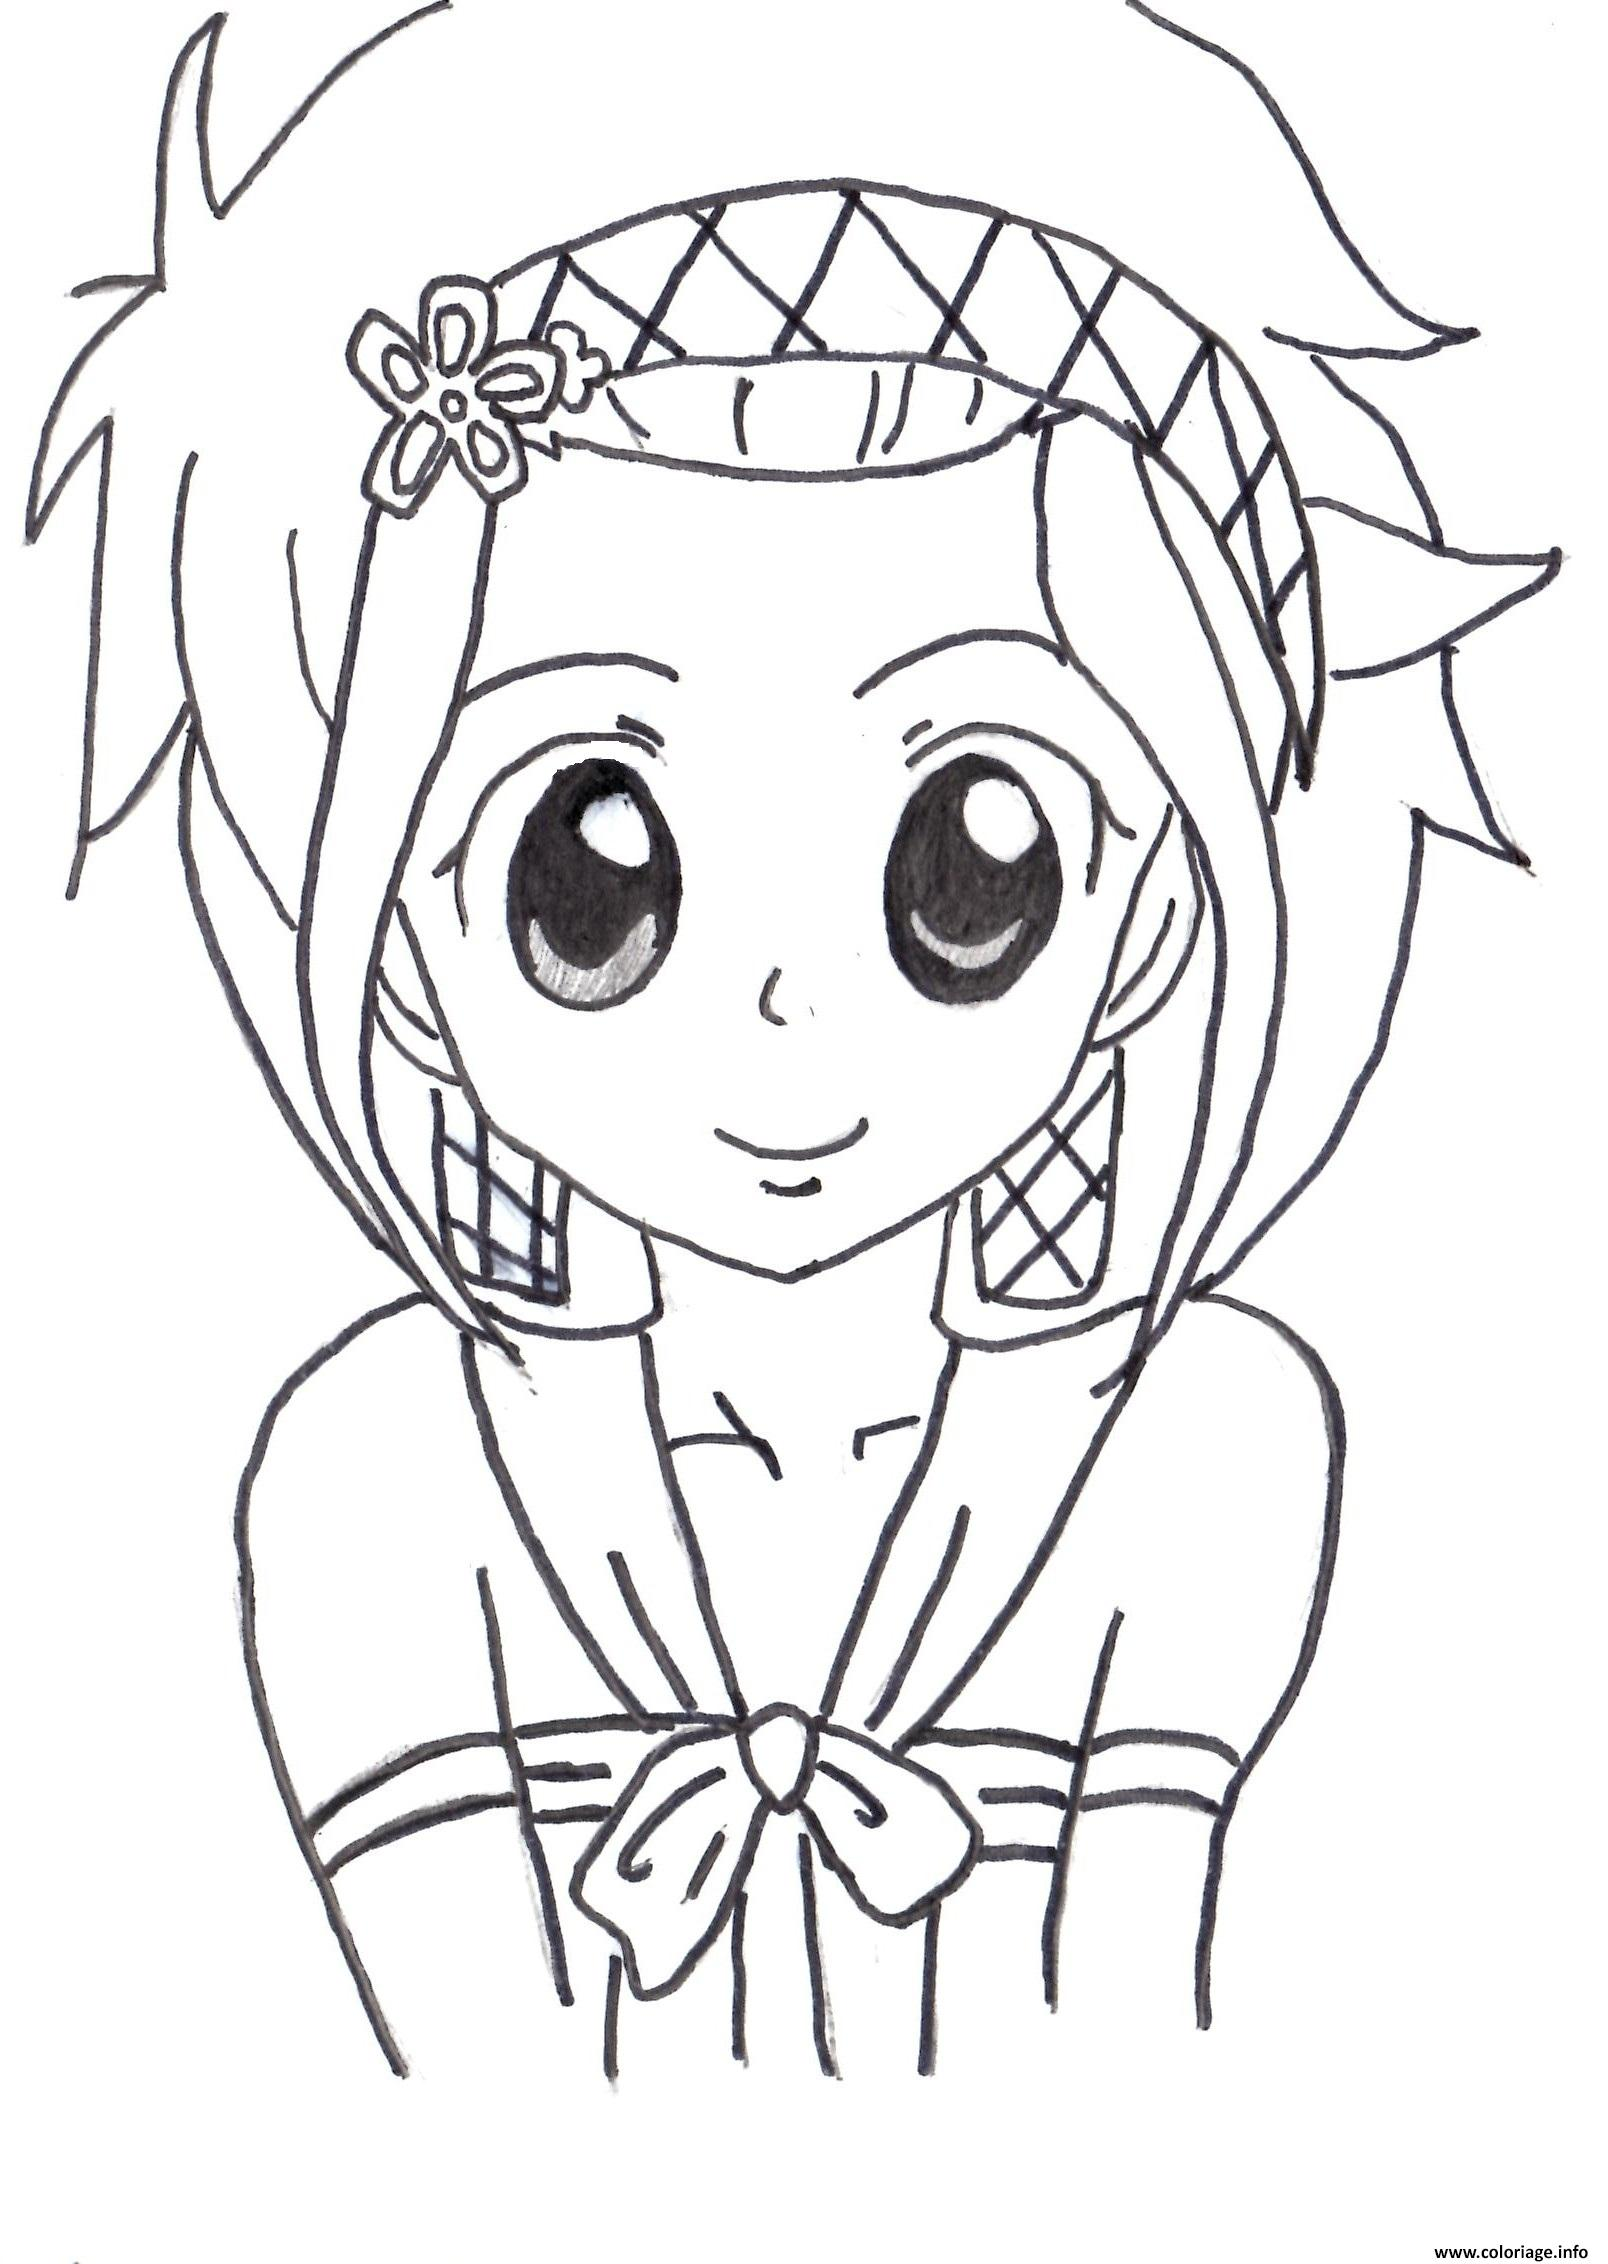 Dessin cute levy mcgarden fairy tail Coloriage Gratuit à Imprimer